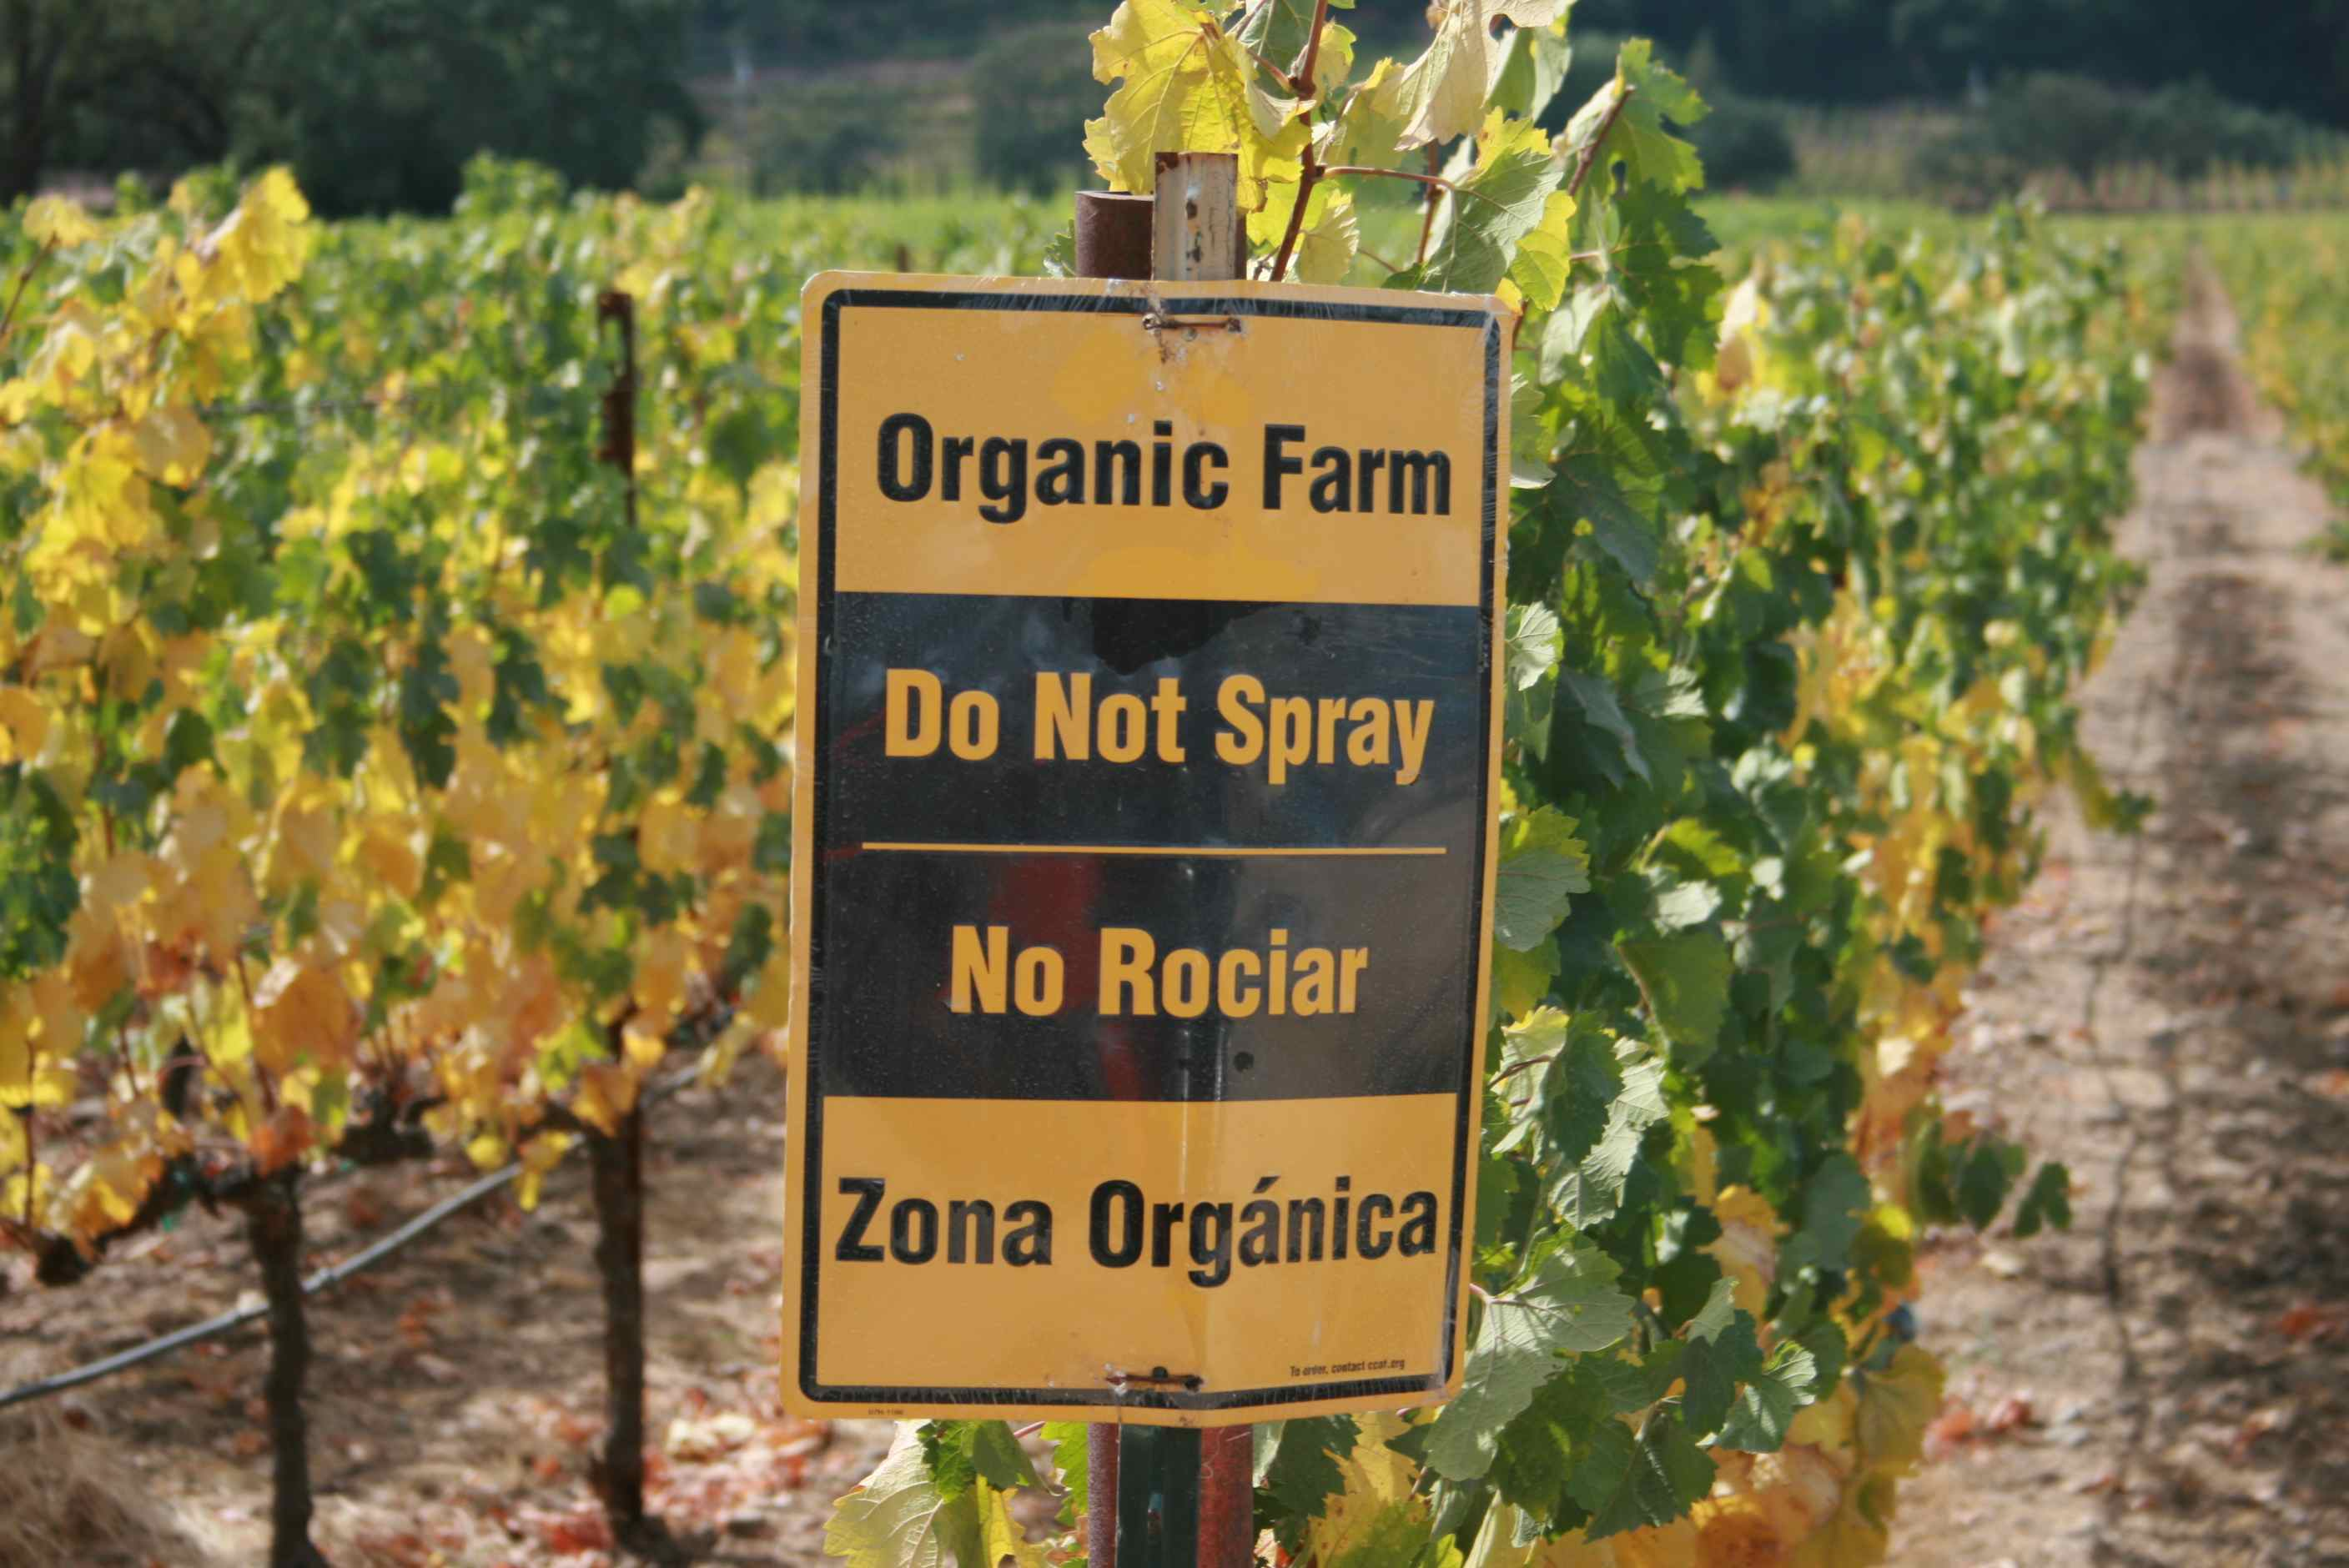 8 Simple Techniques For Organic Pesticides: Not An Oxymoron